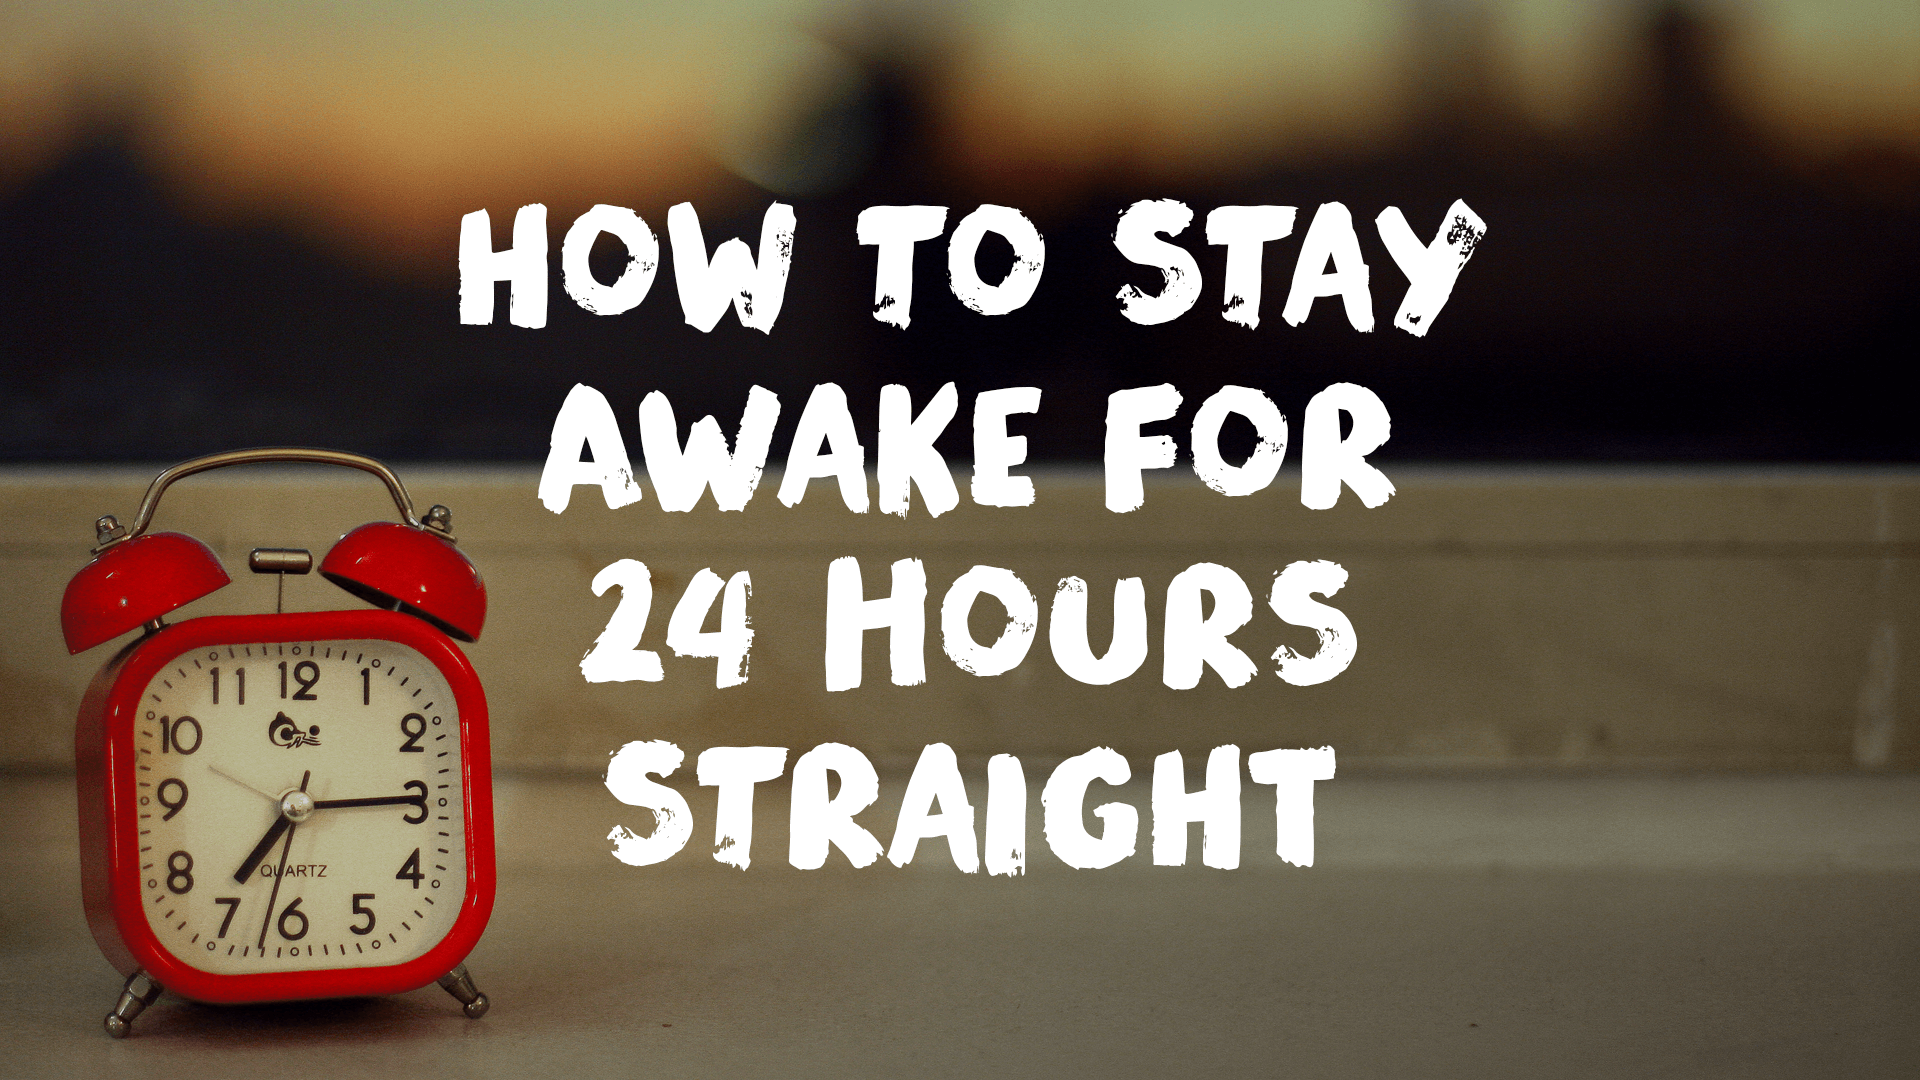 How to Stay Awake for 24 Hours Straight